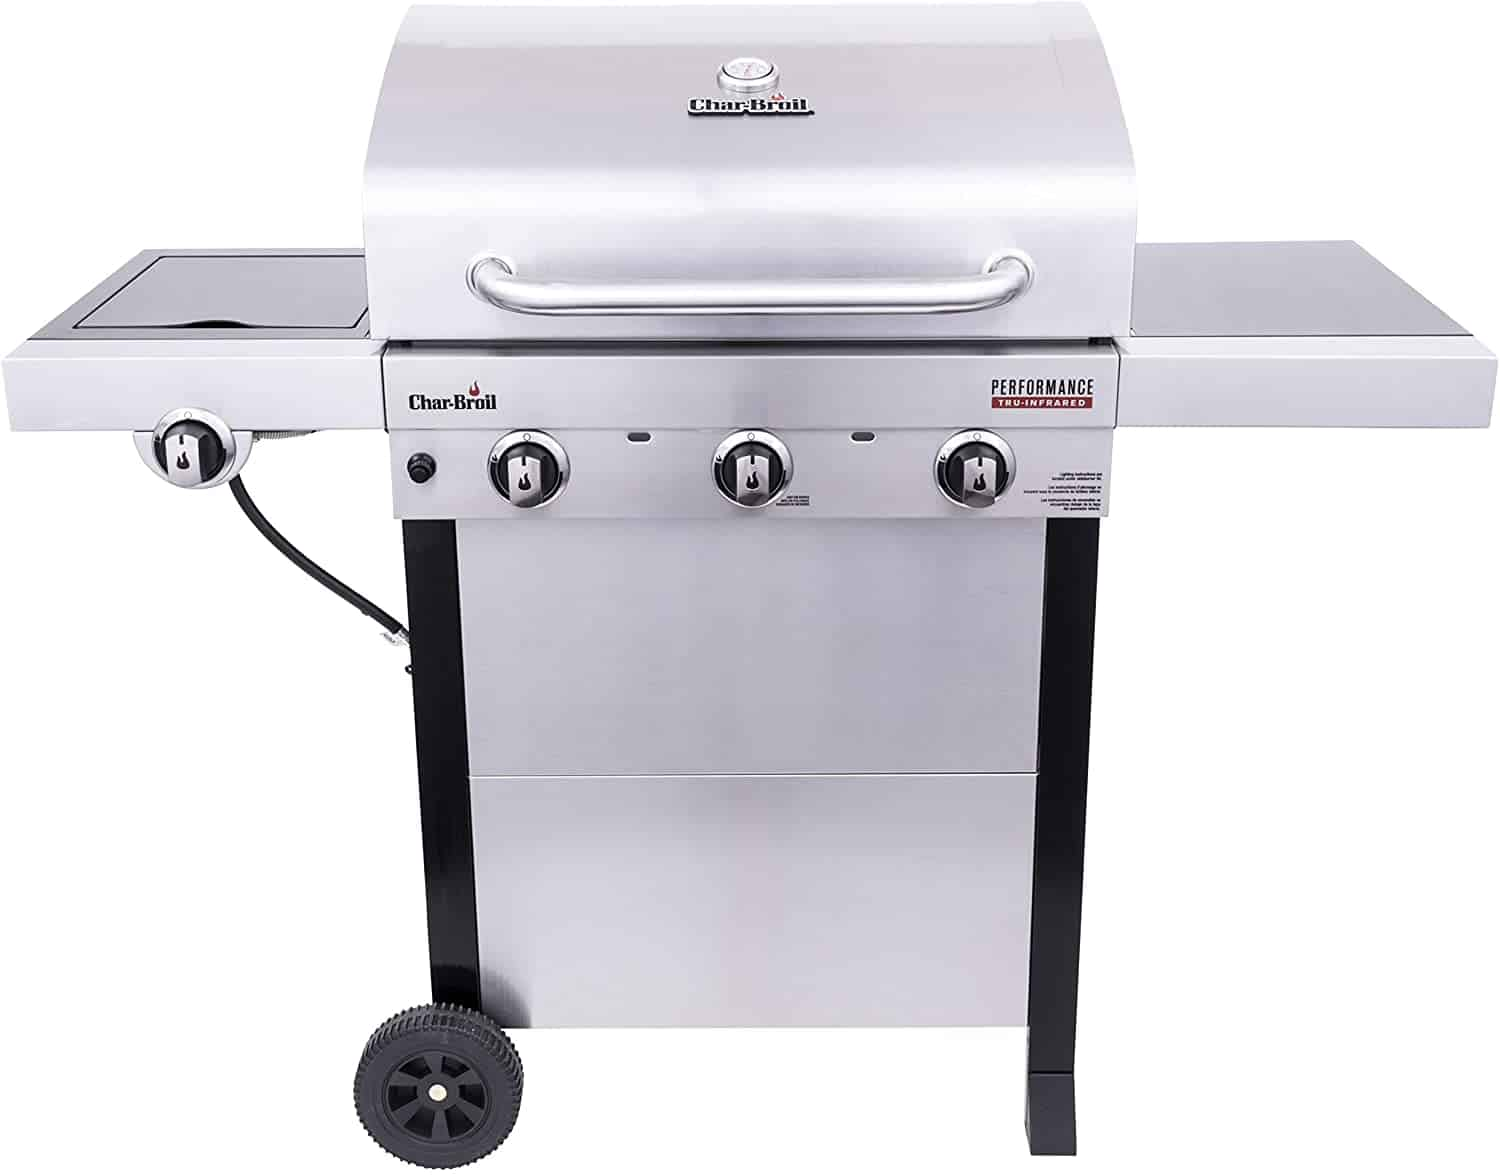 Best char broil infrared grill: Performance TRU- Infrared